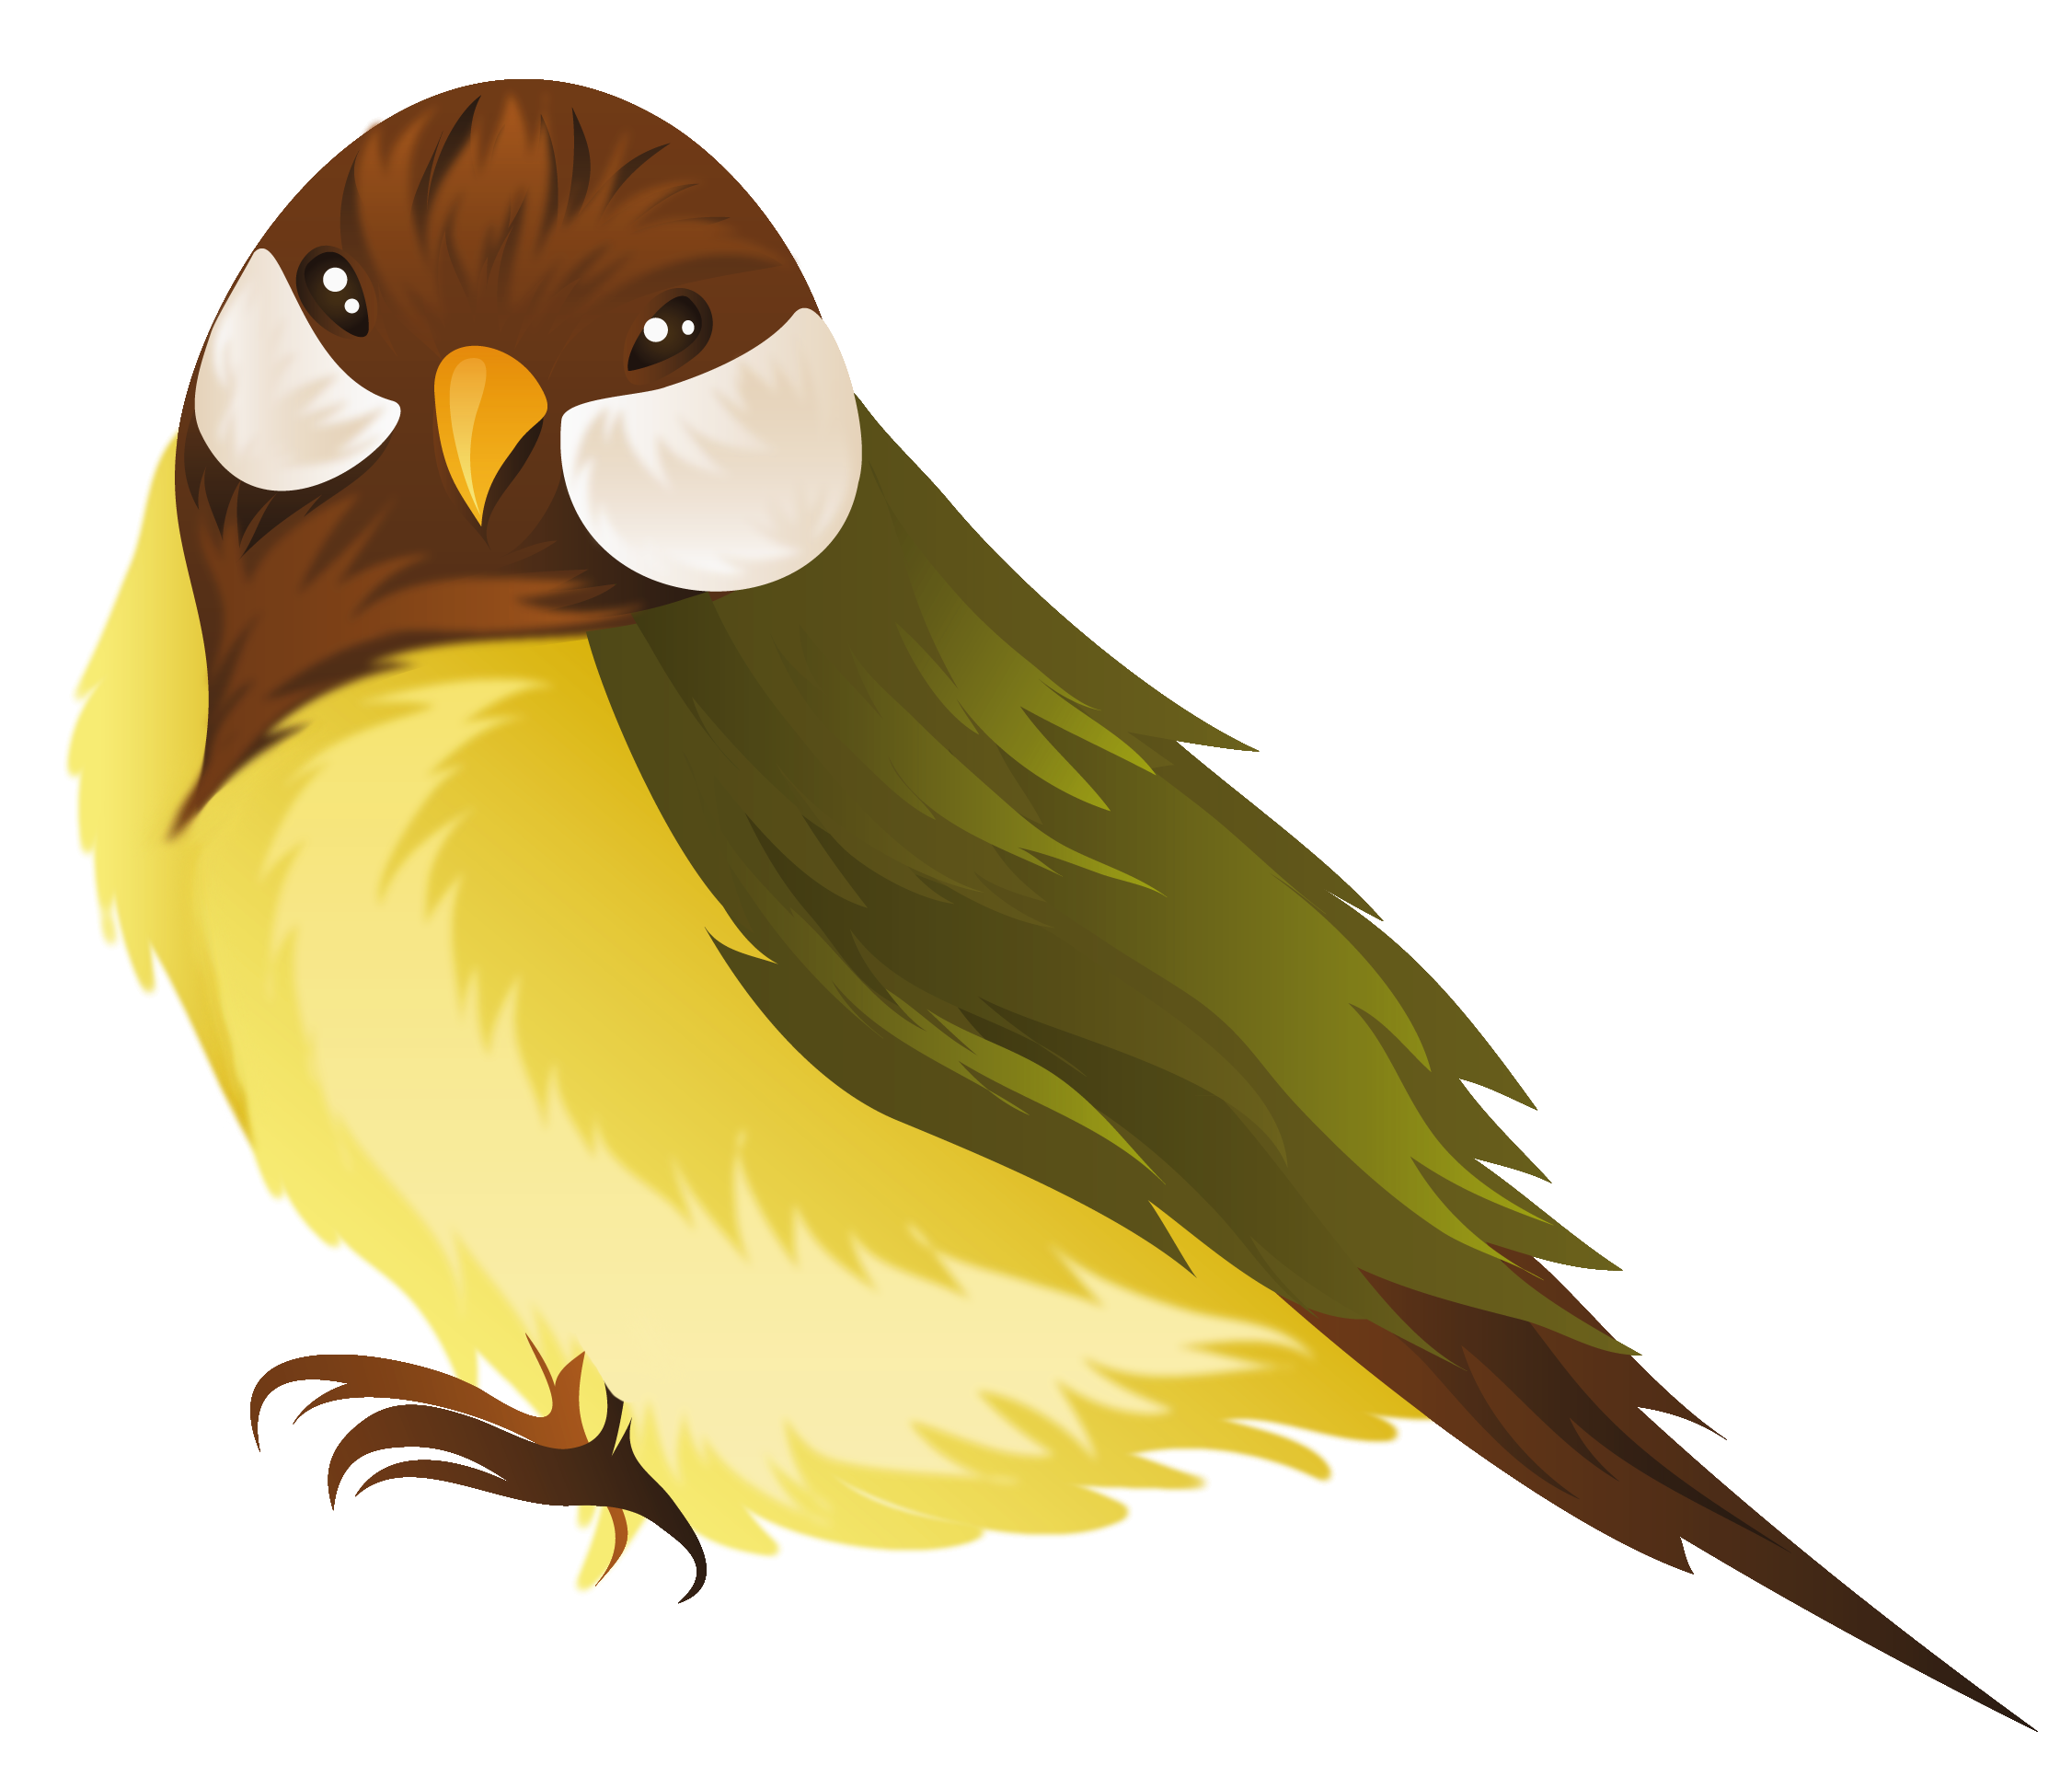 Outside clipart bird. Png image gallery yopriceville